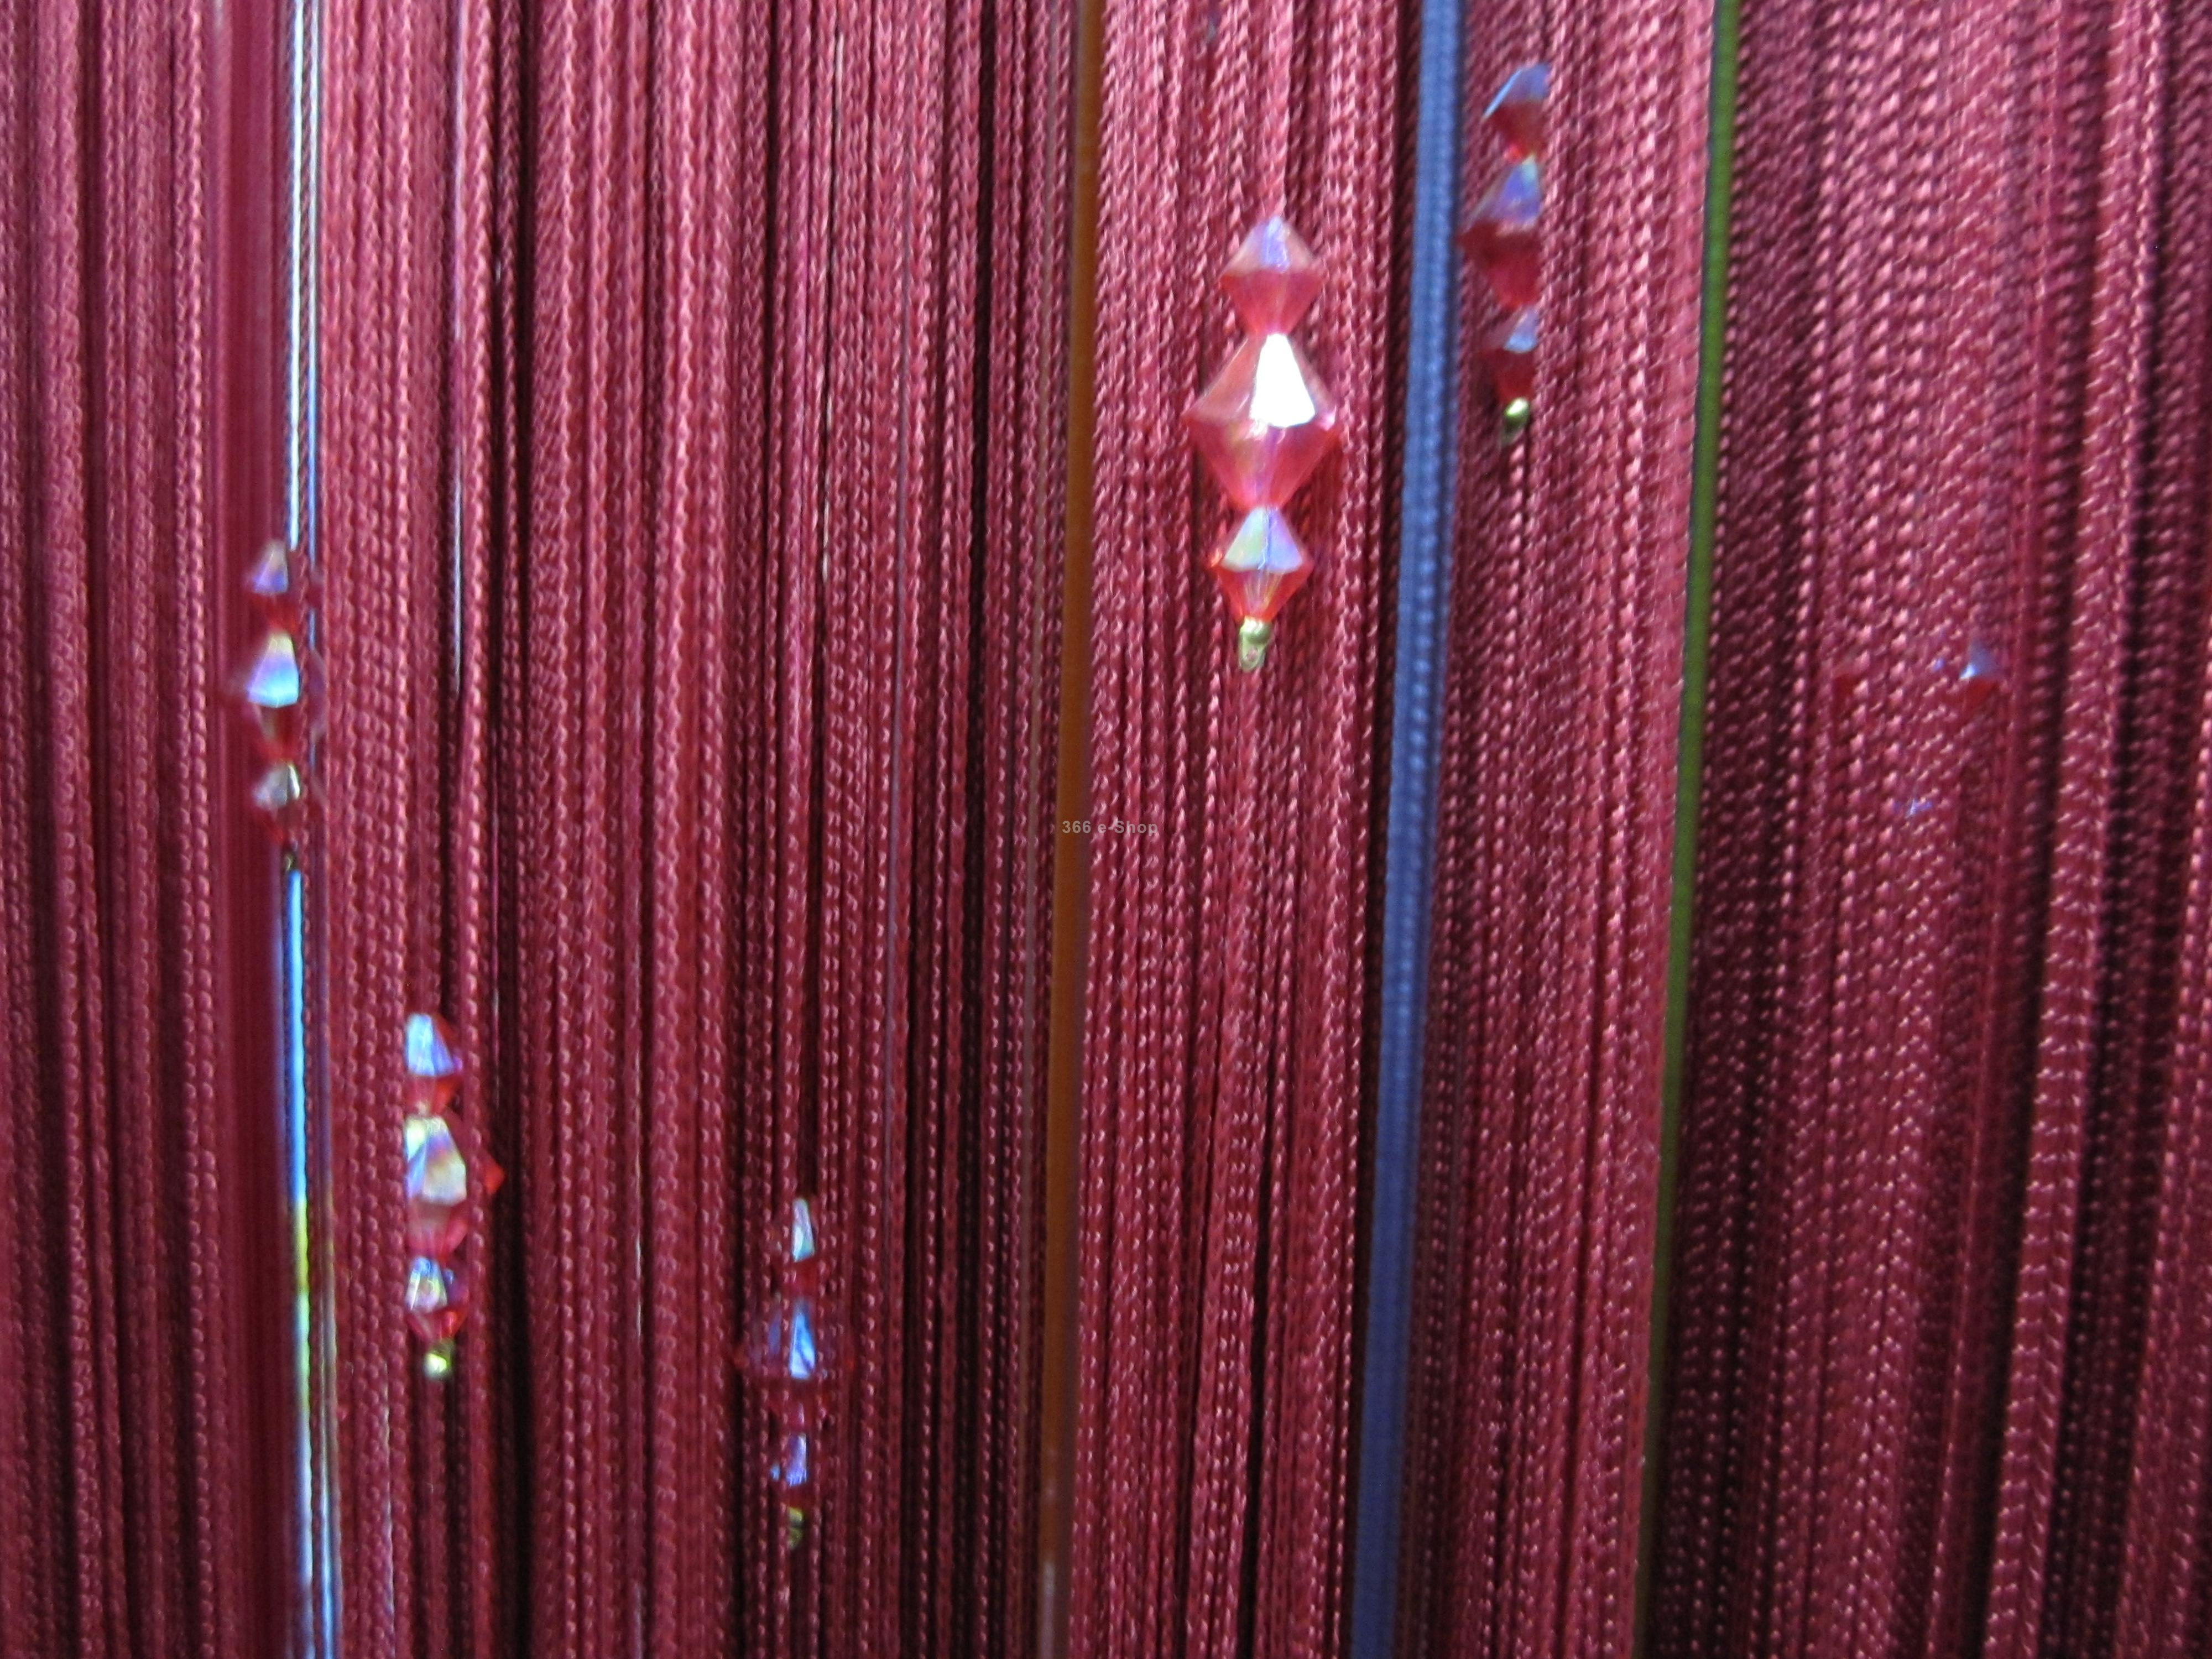 Acrylic Crystal Beads Curtain Window Door Passage Divider Decor Wine Red Free Shipping In